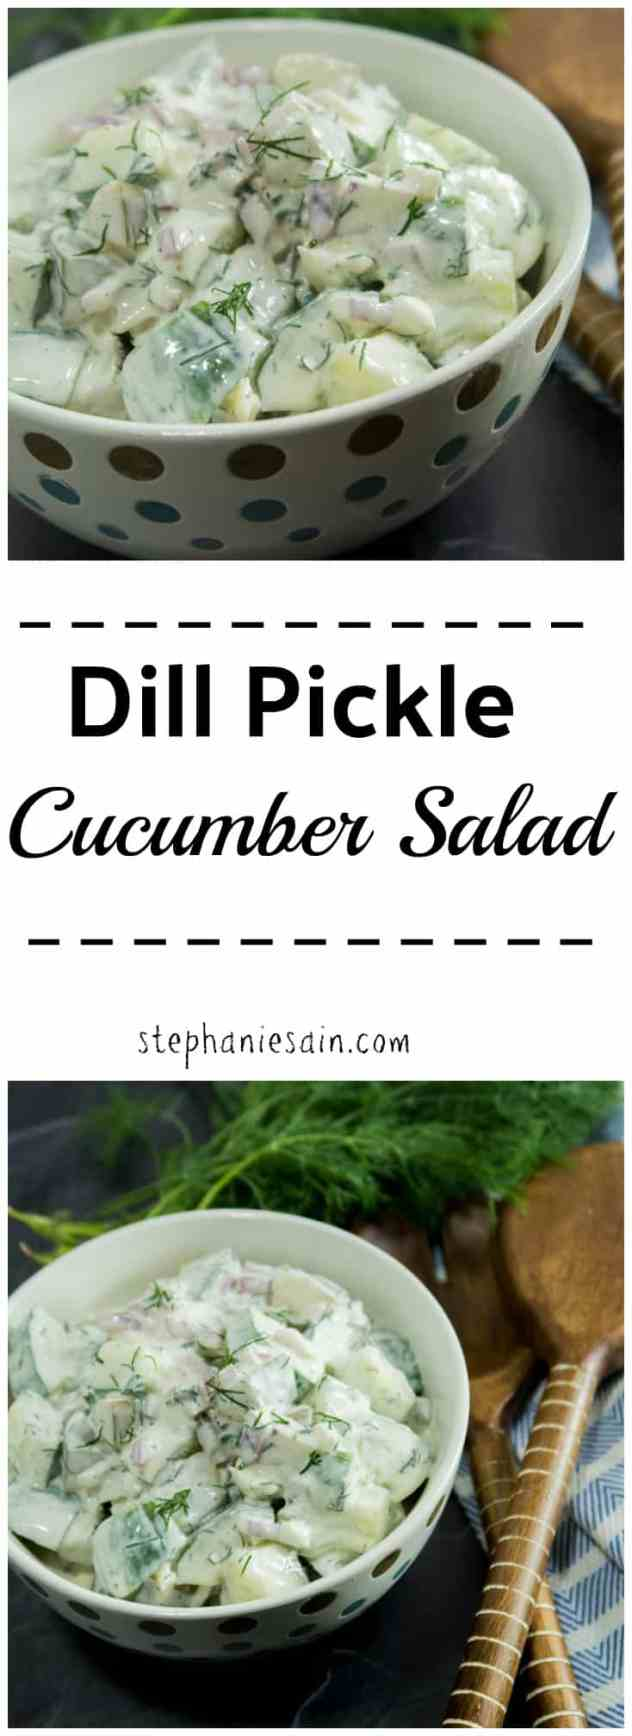 Dill Pickle Cucumber Salad is an easy to prepare tasty, creamy salad. Perfect as a side with all your light and easy summer meals or great at gatherings.Gluten free & Vegetarian.